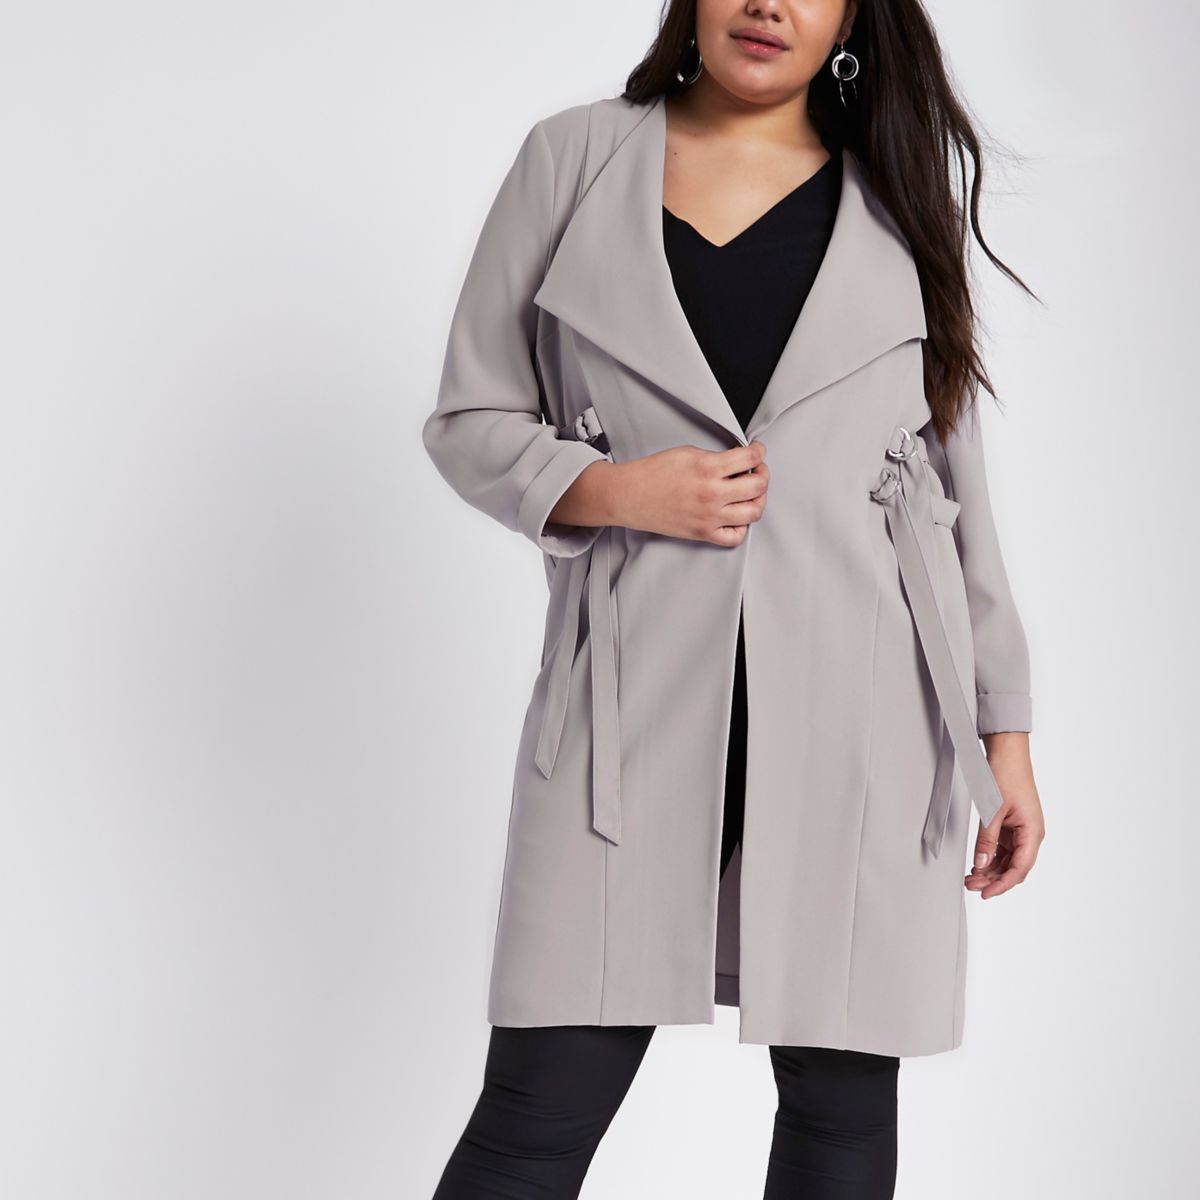 Grey Duster Coat In River Island